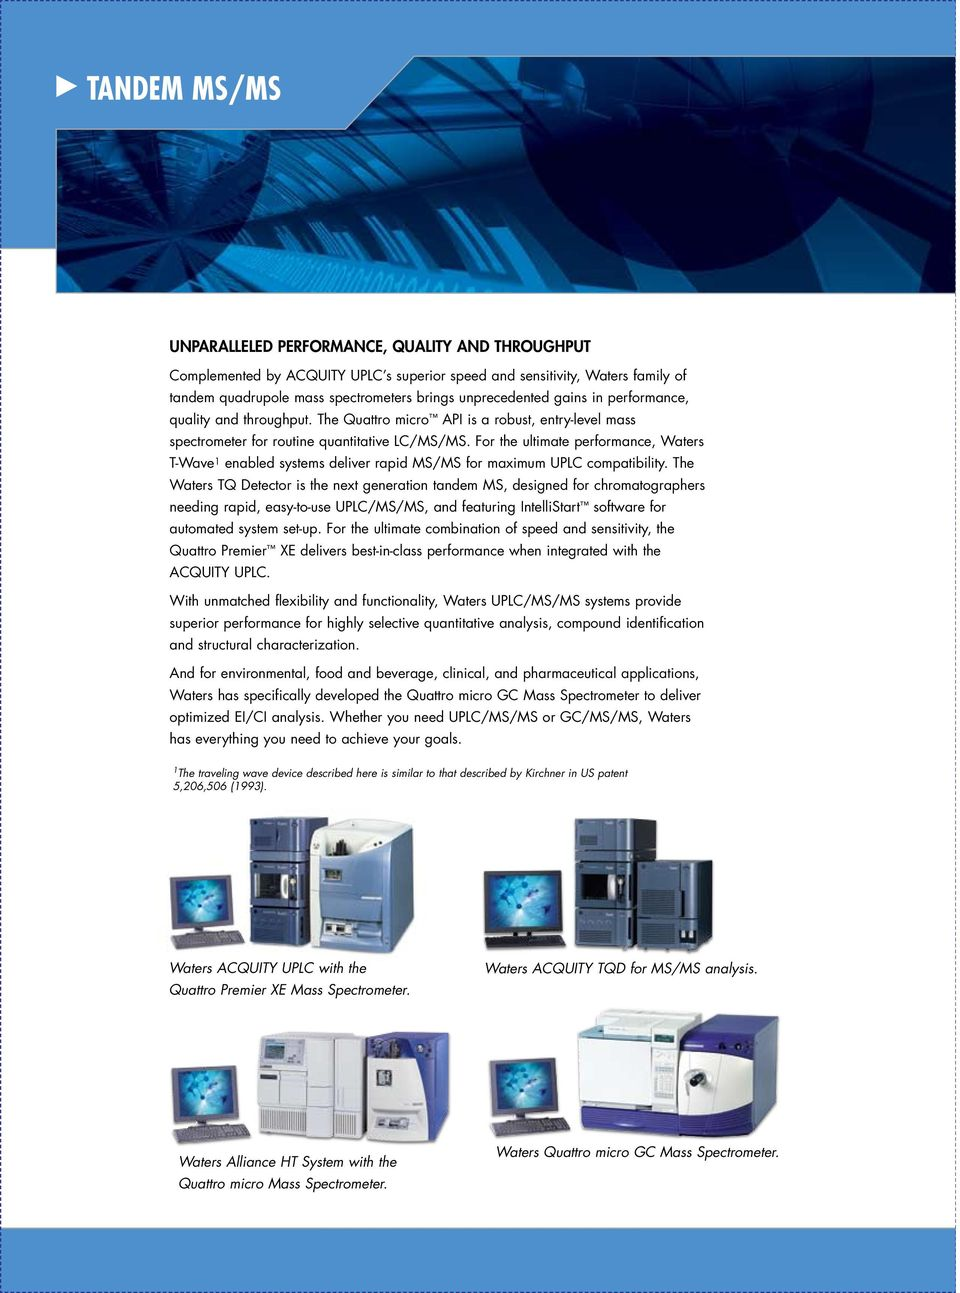 For the ultimate performance, Waters T-Wave 1 enabled systems deliver rapid MS/MS for maximum UPLC compatibility.